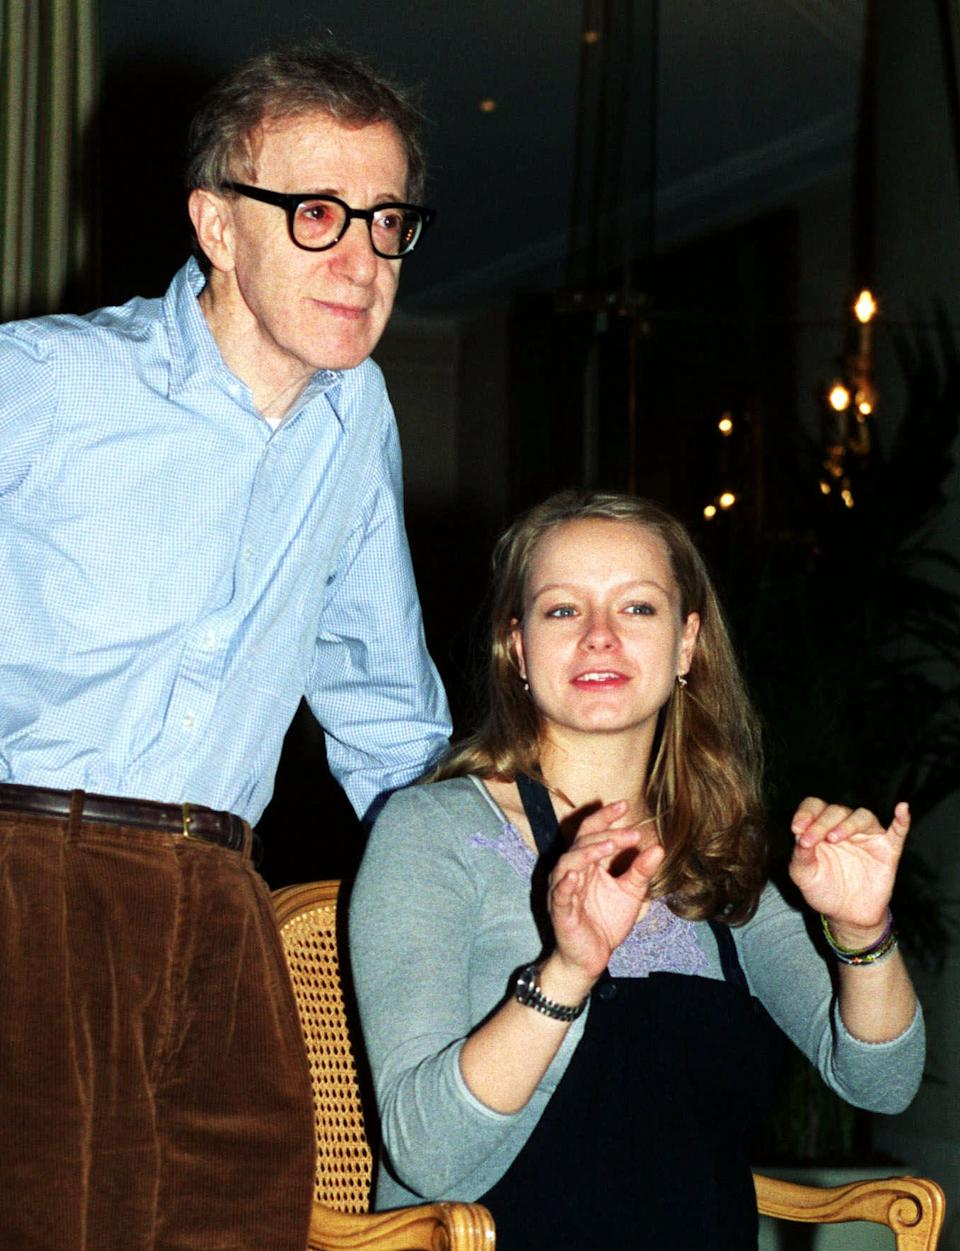 """Director Woody Allen and 22-year-old English actress Samantha Morton answer reporters questions during a press conference in Paris Friday, Dec. 17, 1999, to present Allen's latest film """"Sweet and Lowdown,"""" which is due out in France Jan. 26. Allen says the millennium is bringing with it a new """"golden age"""" of cinema. (AP Photo/Remy de la Mauviniere)"""